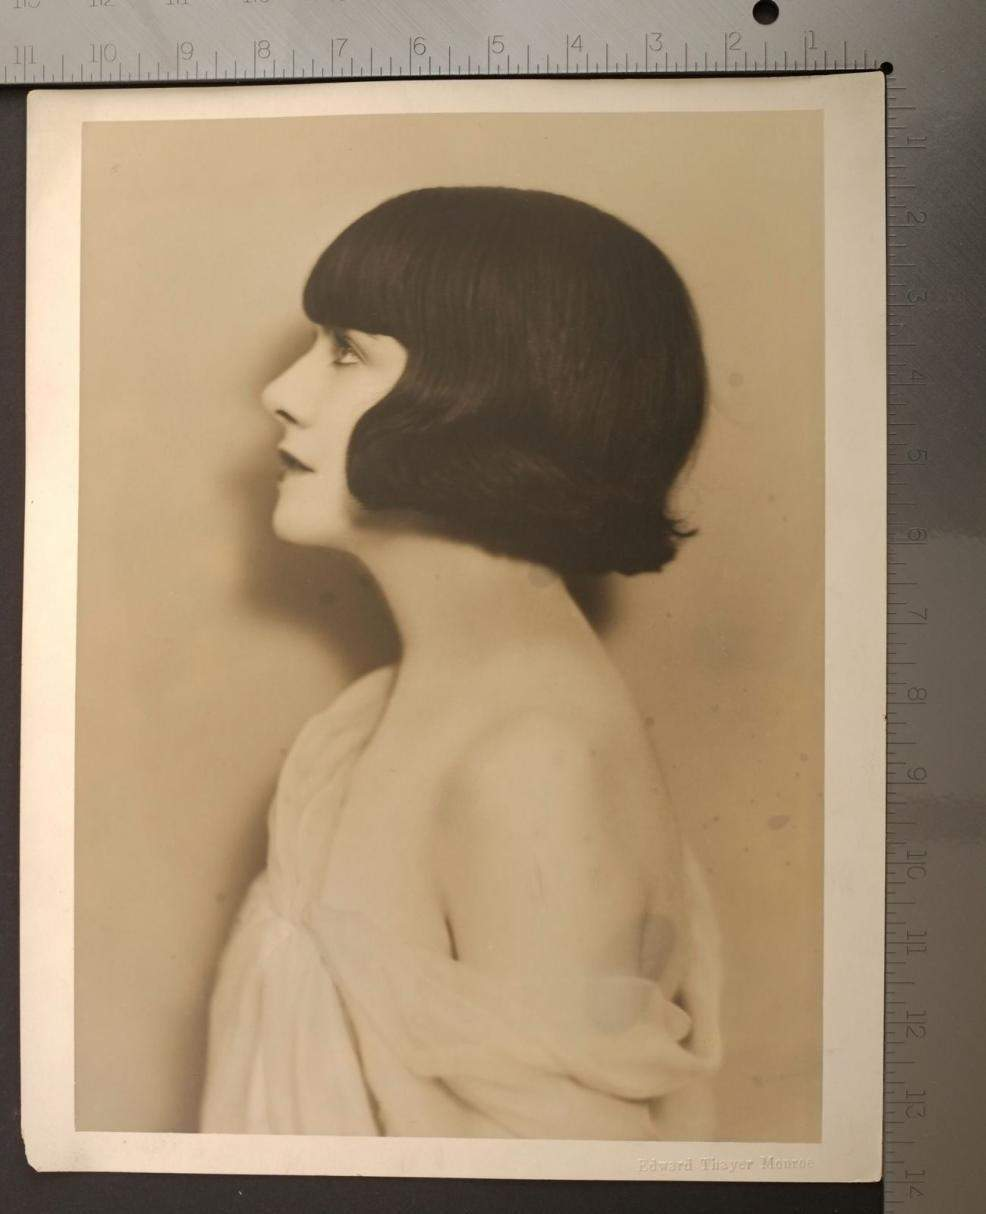 1923 Anastasia Reilly Publicity Still Portrait by Edward Thayer Monroe